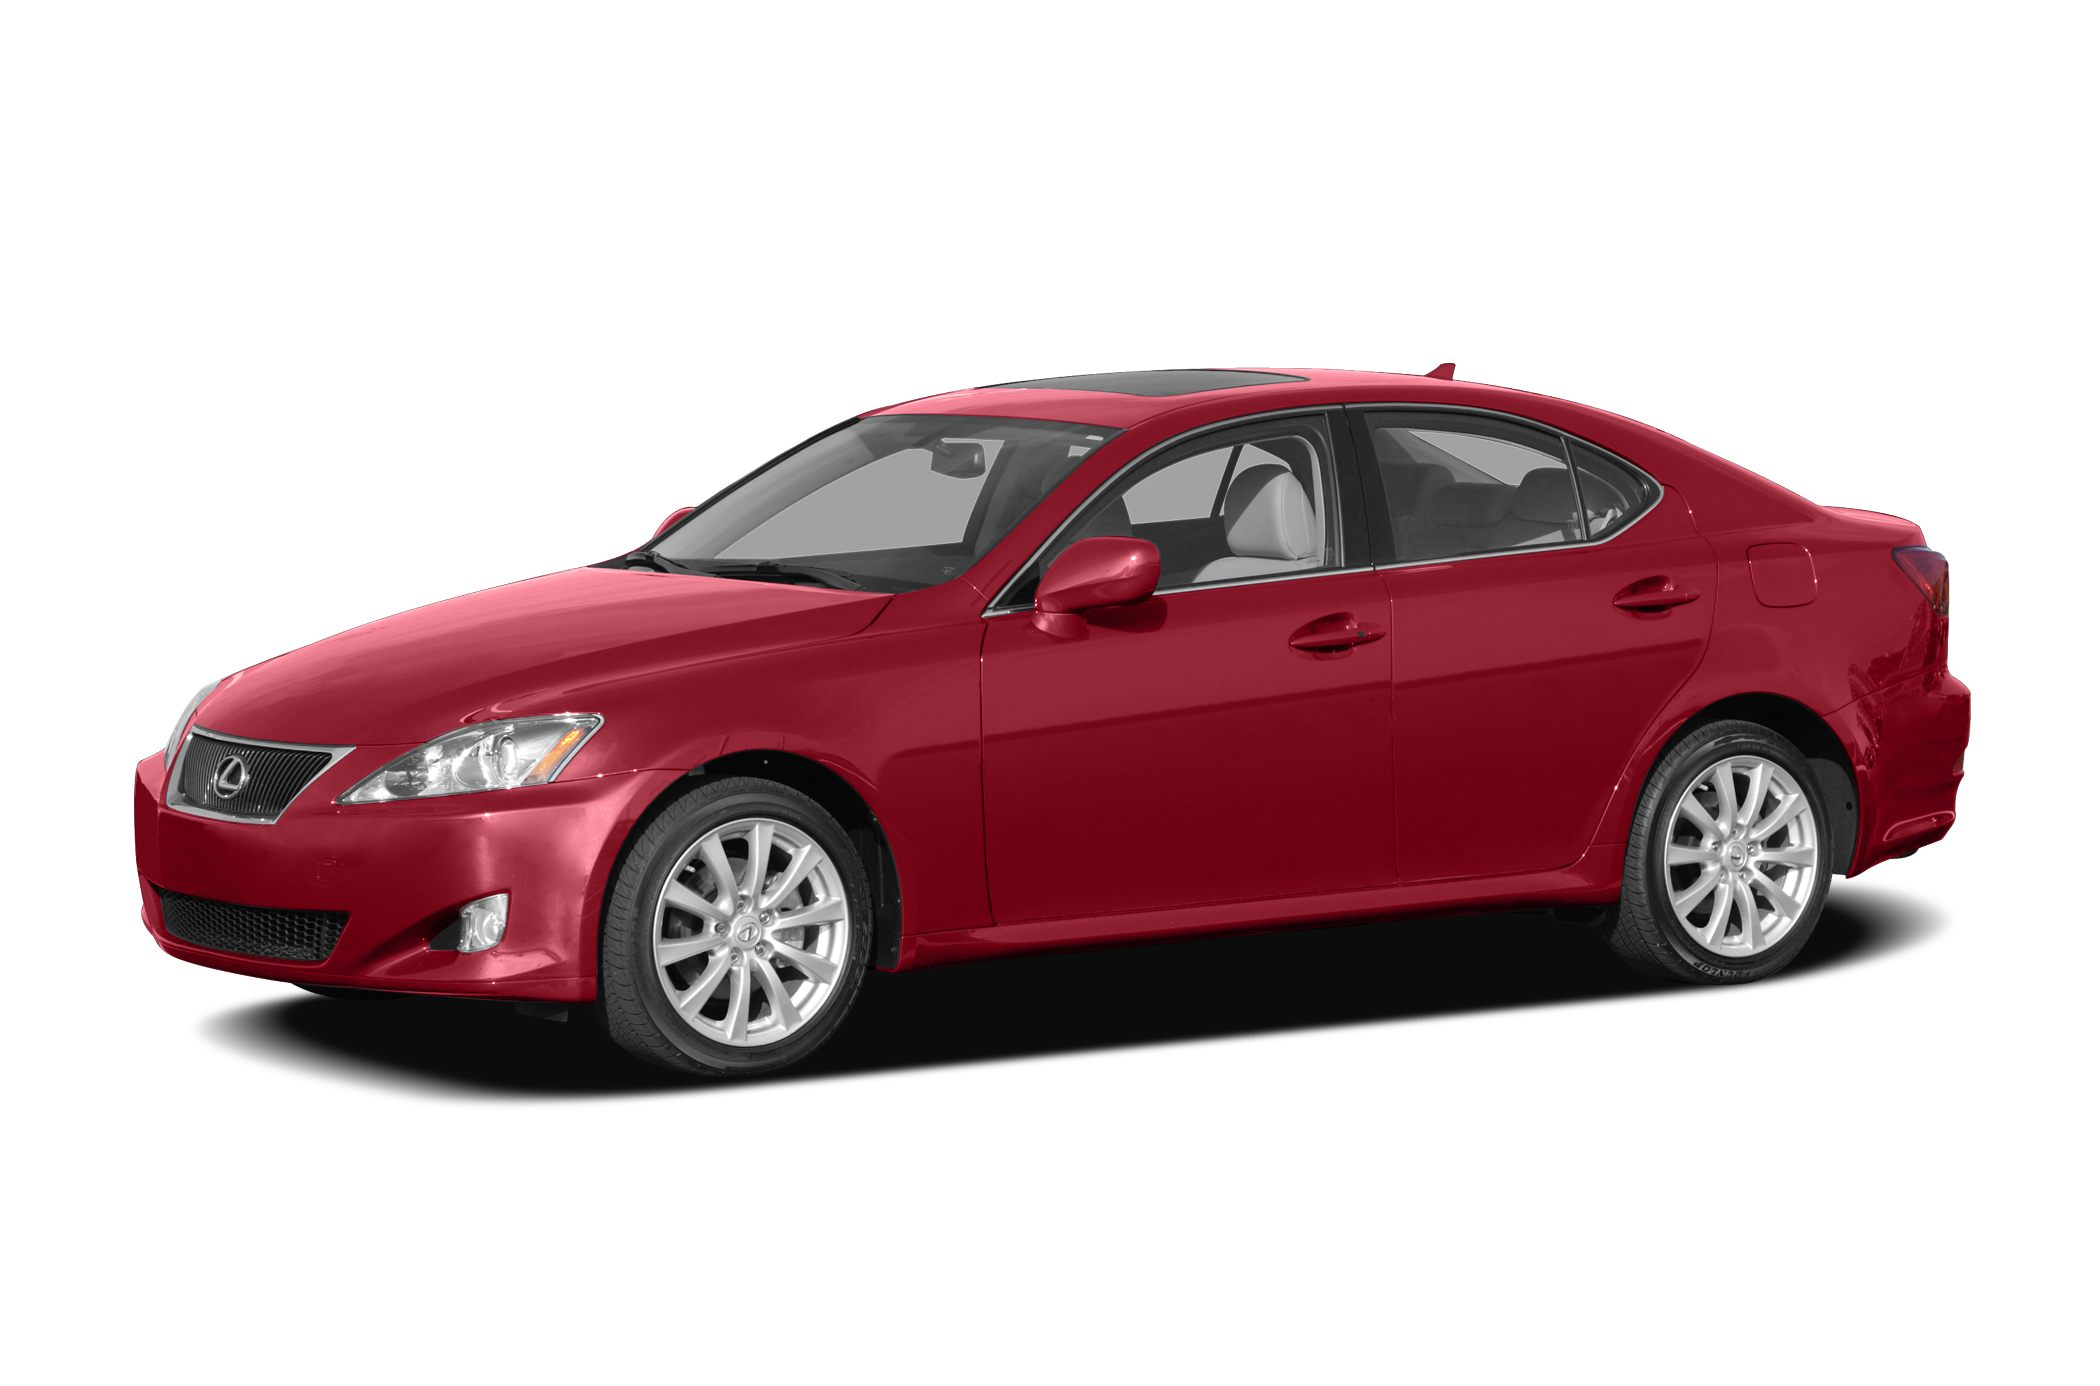 2007 Lexus IS 250 Sedan for sale in Pasadena for $15,999 with 62,940 miles.